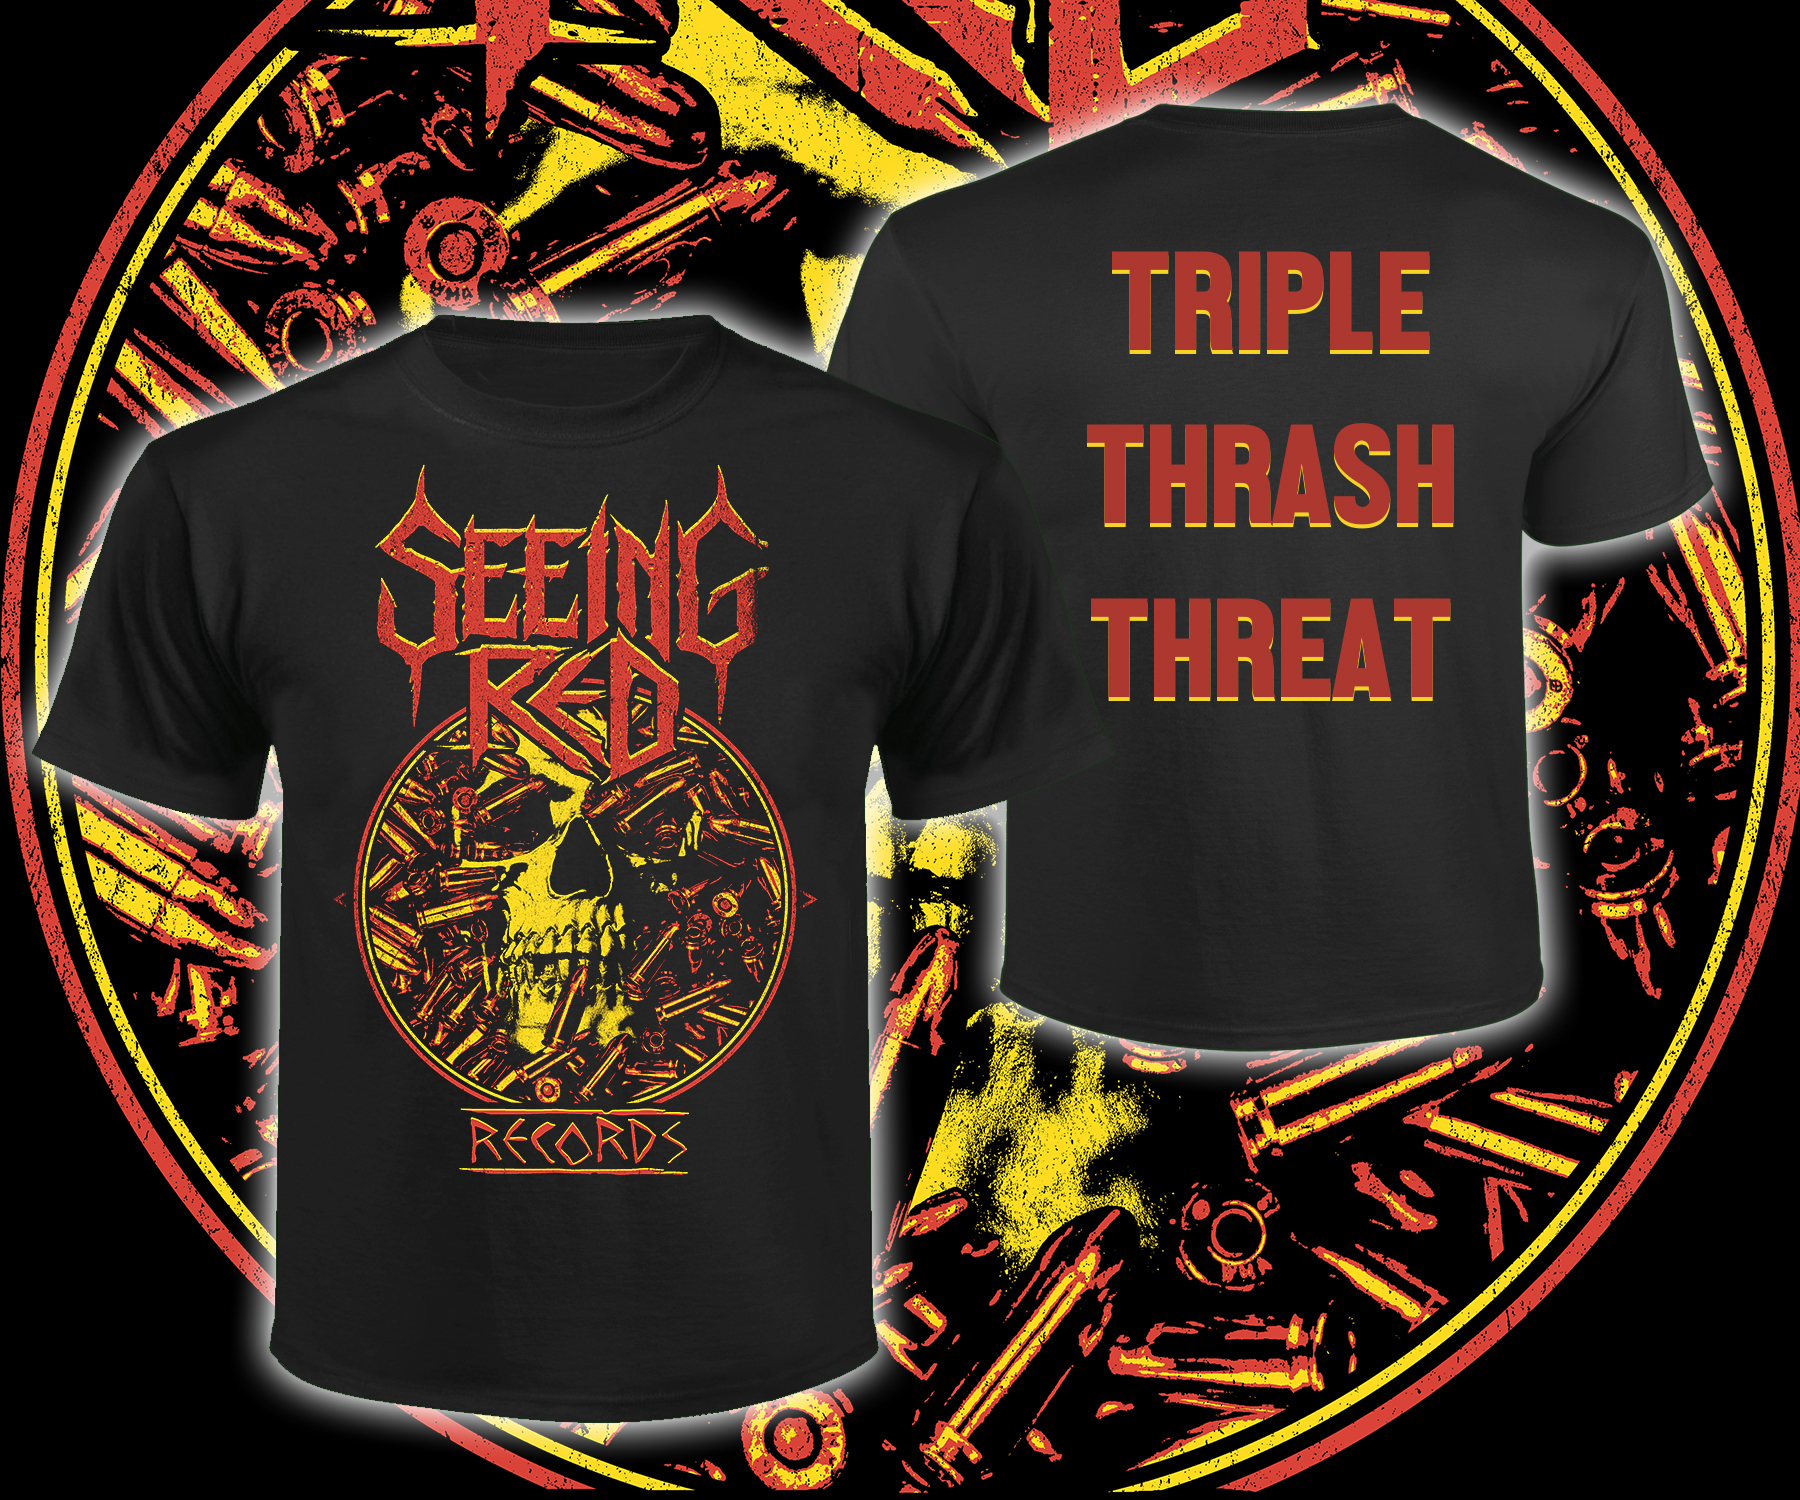 Seeing Red Records - Triple Thrash Threat